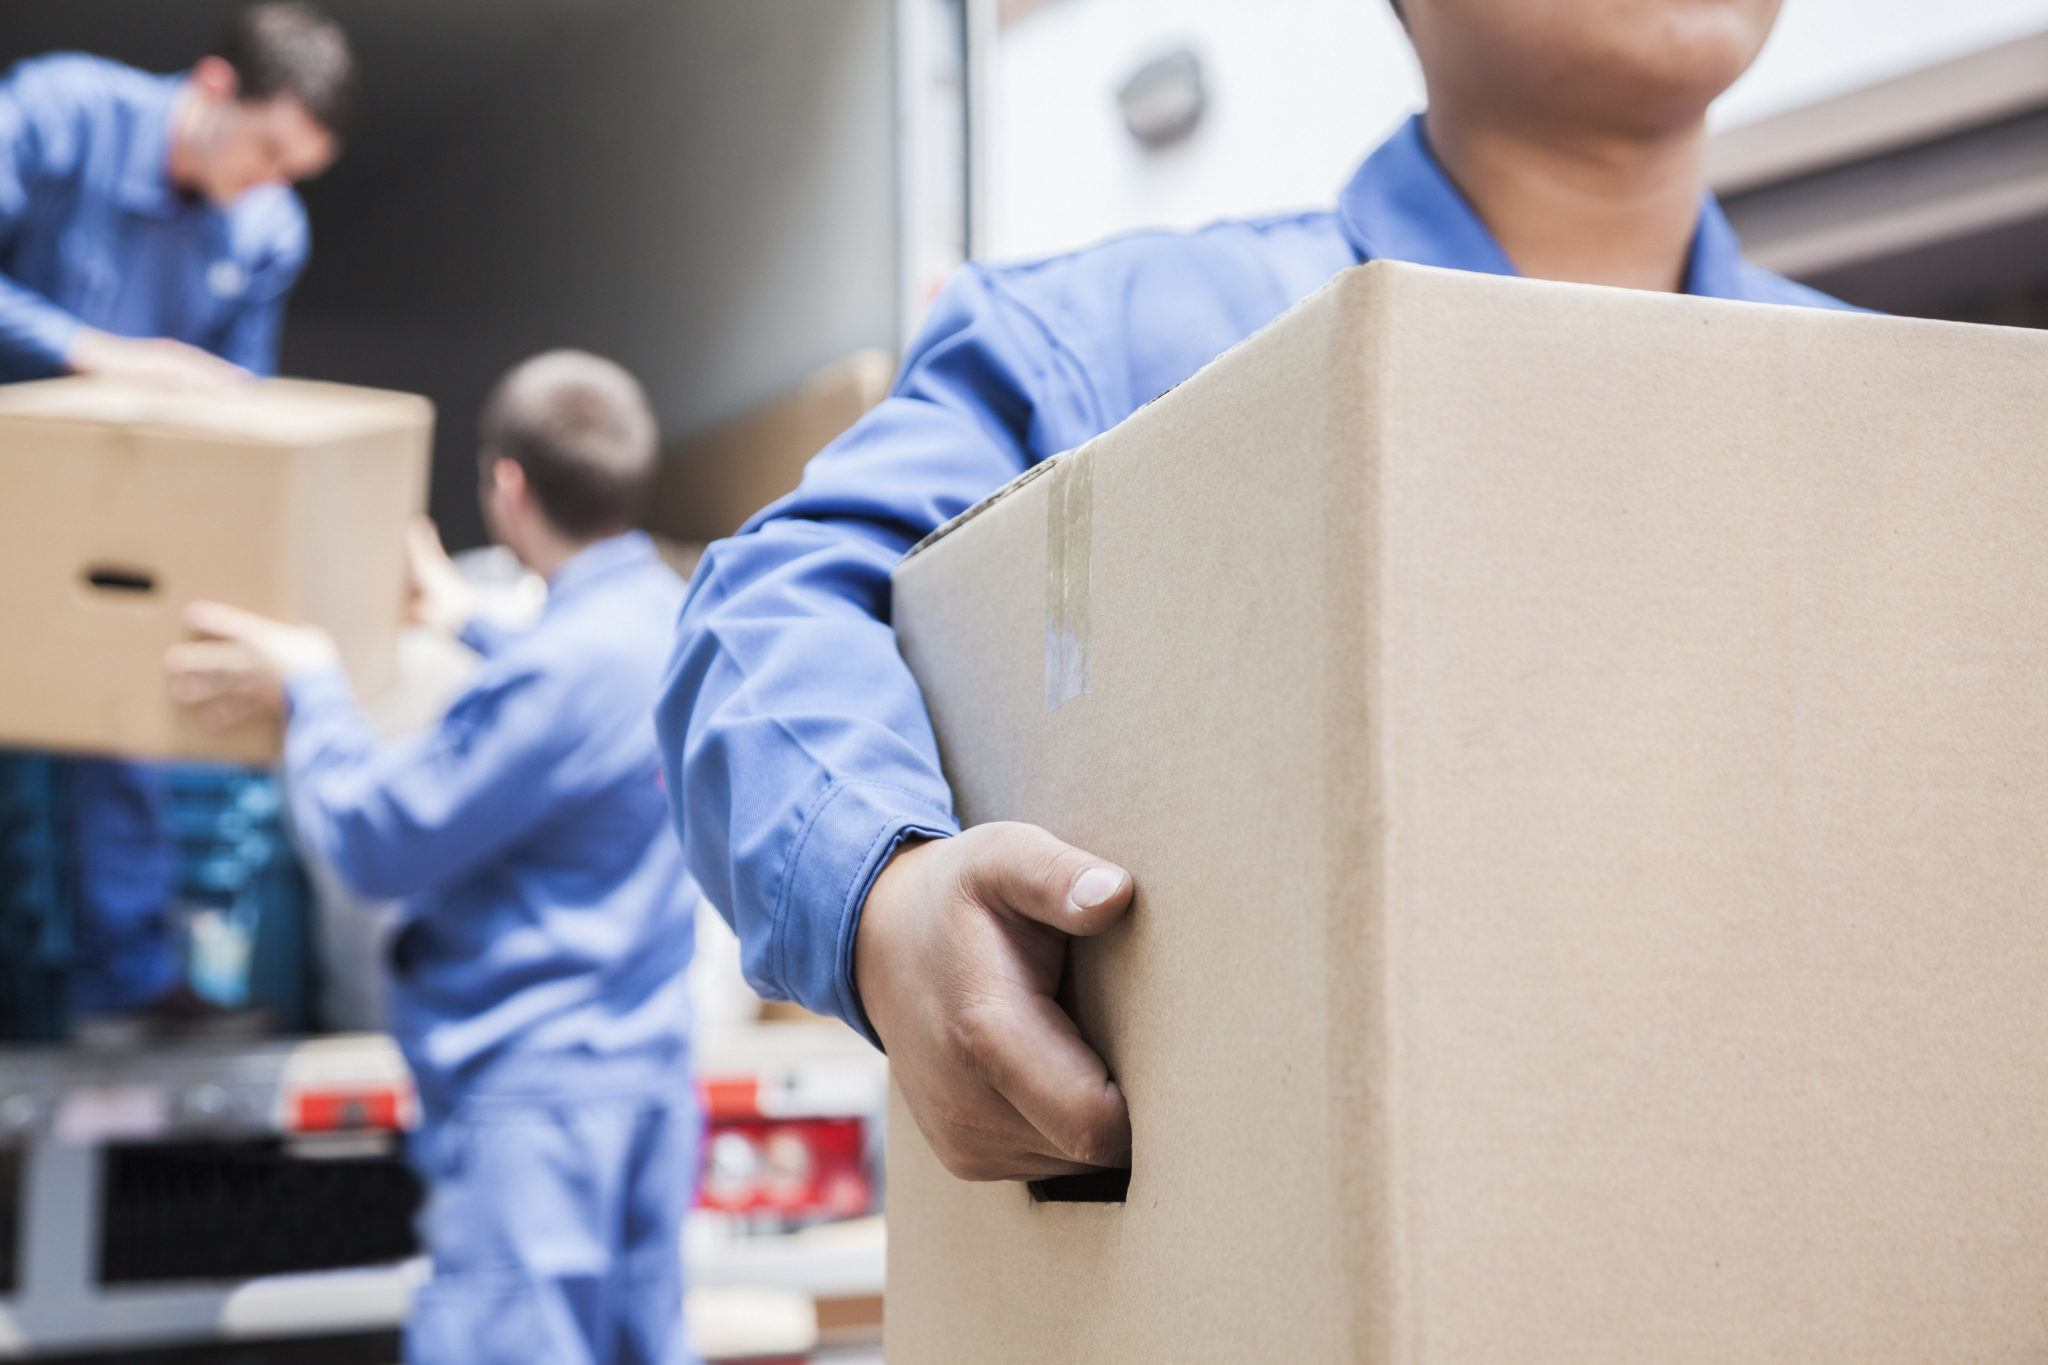 hire a moving company, hiring moving companies